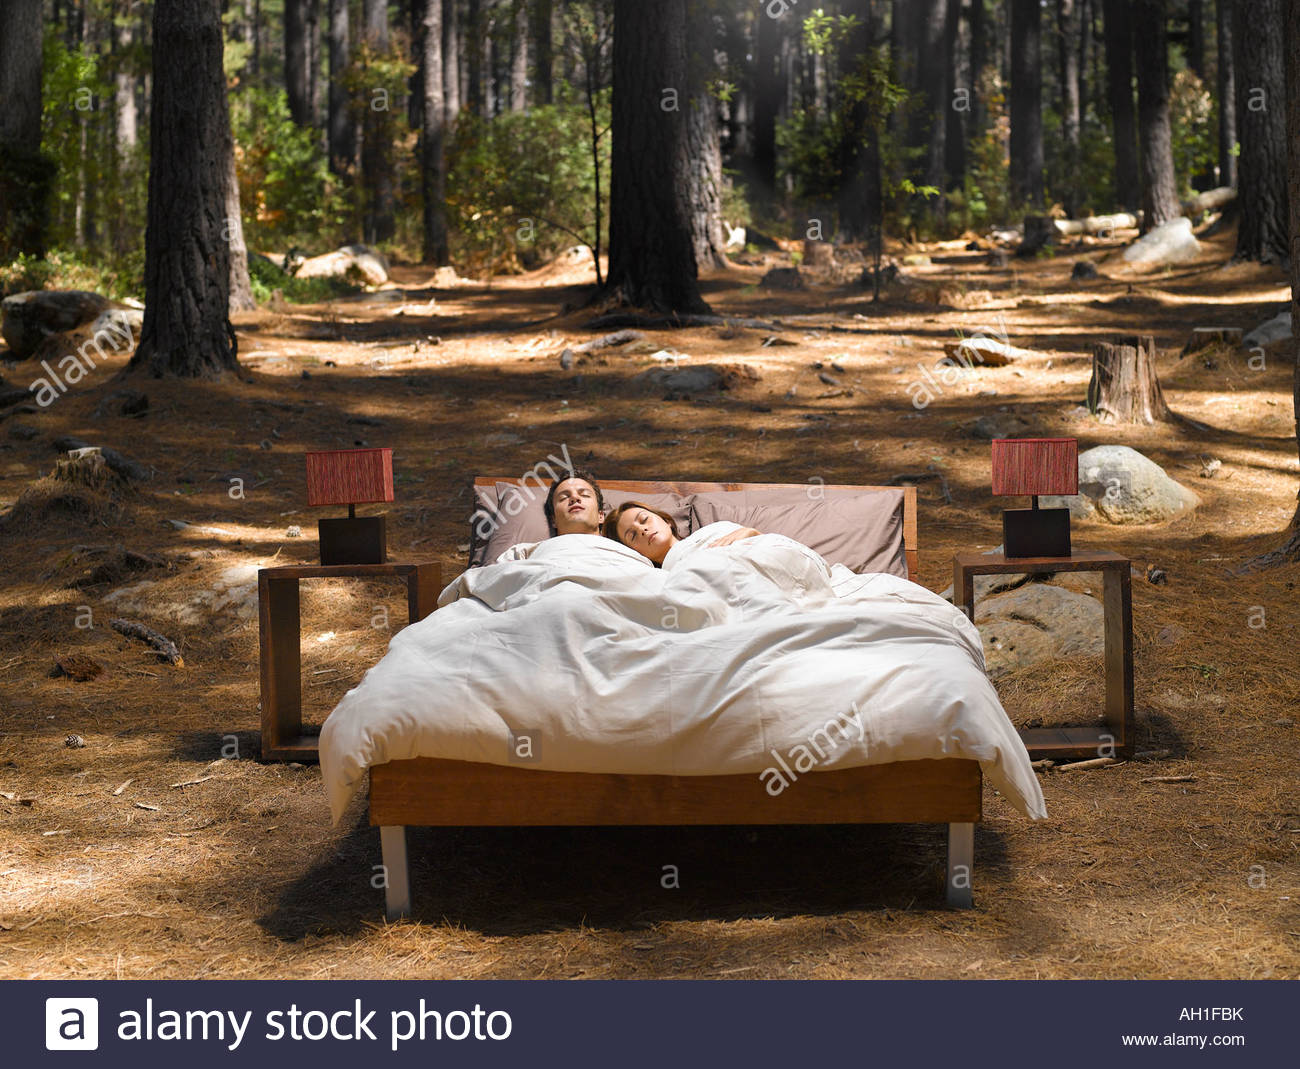 A Couple Sleeping In A Bed Outdoors In The Woods Stock